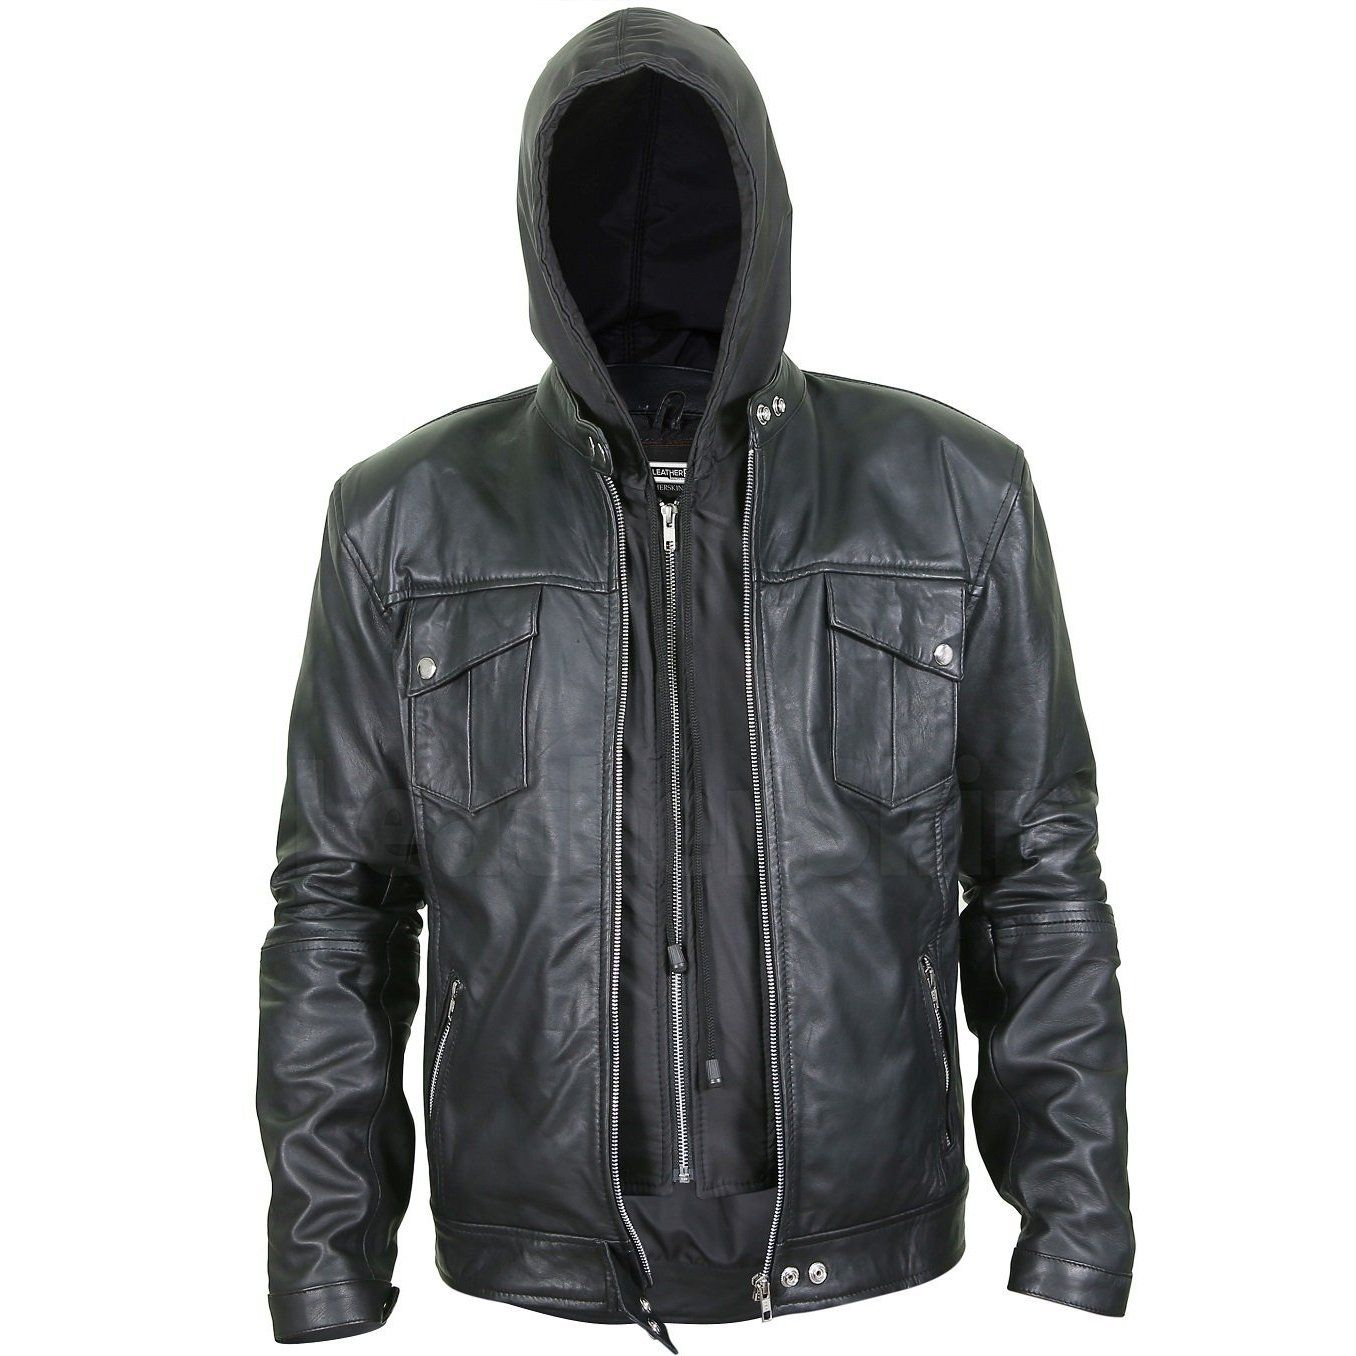 Men S Black Leather Jacket With Hoodie Leather Jacket Men Black Hoodie Men Best Leather Jackets [ 1356 x 1356 Pixel ]